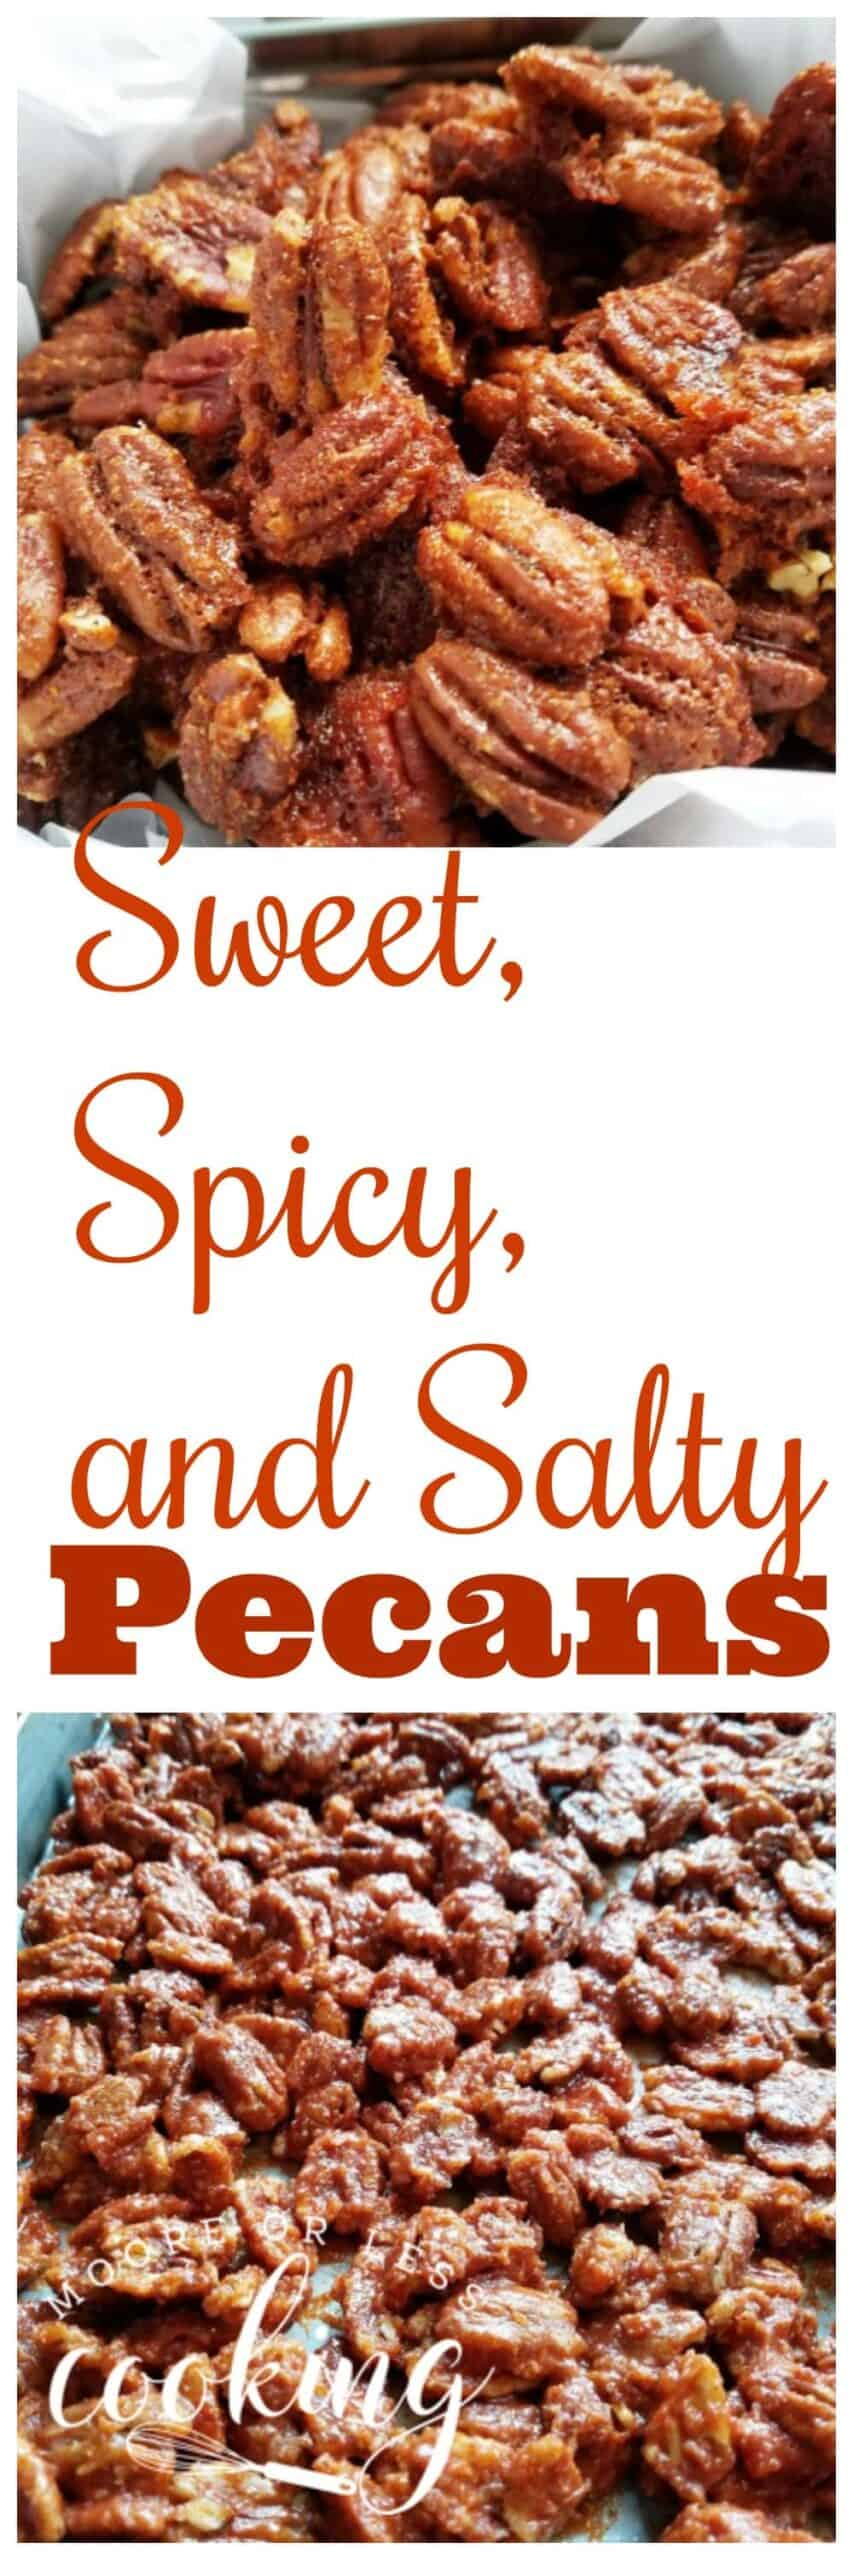 An incredibly tasty combination of sweet, spicy, and salty roasted pecans. Perfect for snacks or as an appetizer or gifts. Use as a topping for your favorite salad, ice cream, or cheesecake. via @Mooreorlesscook